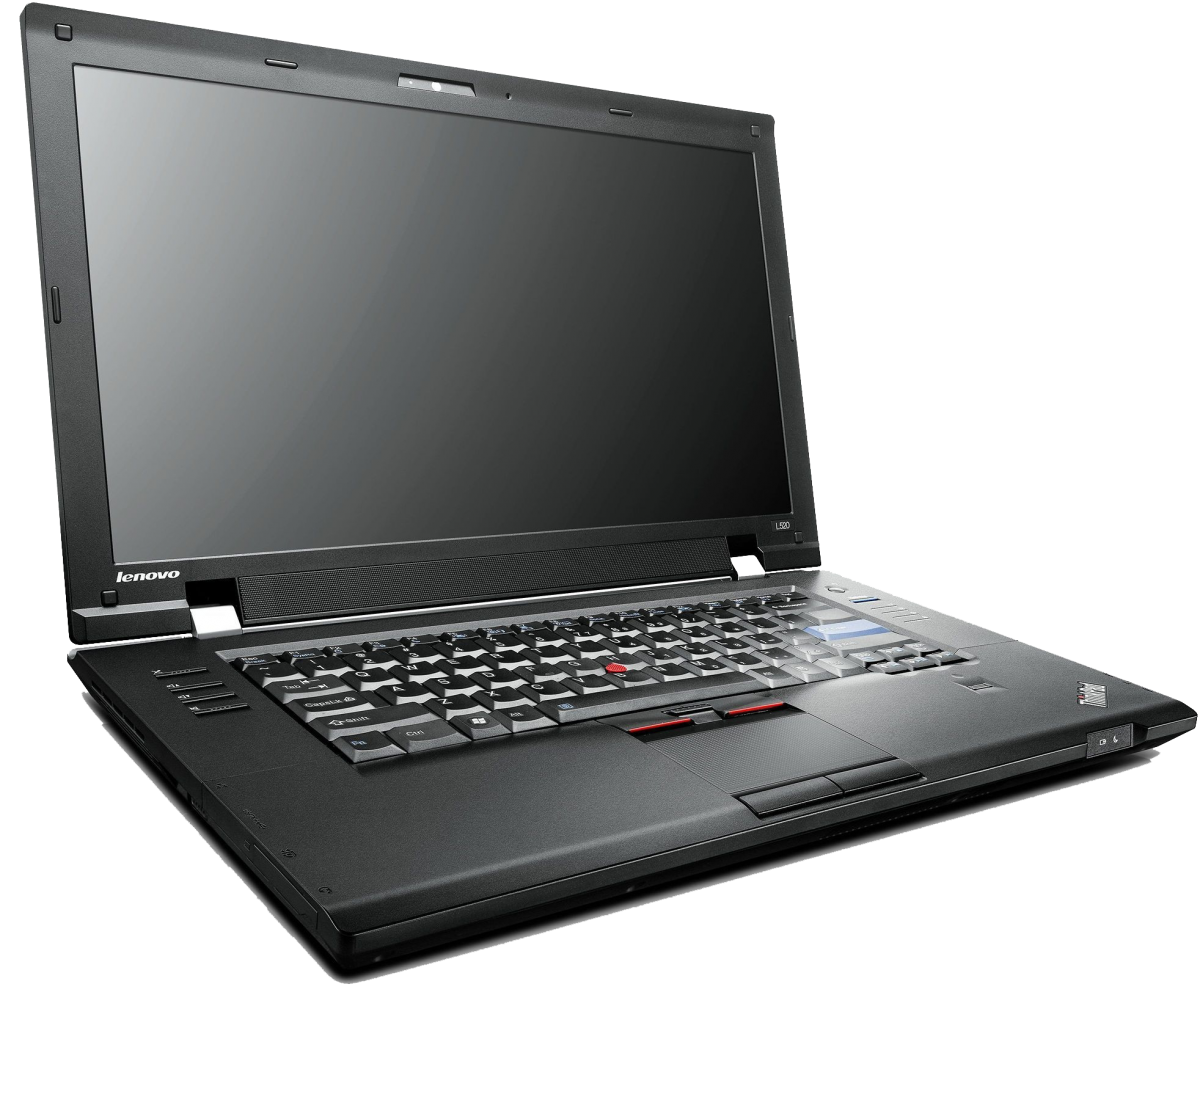 Laptop notebook PNG image image with transparent background 16